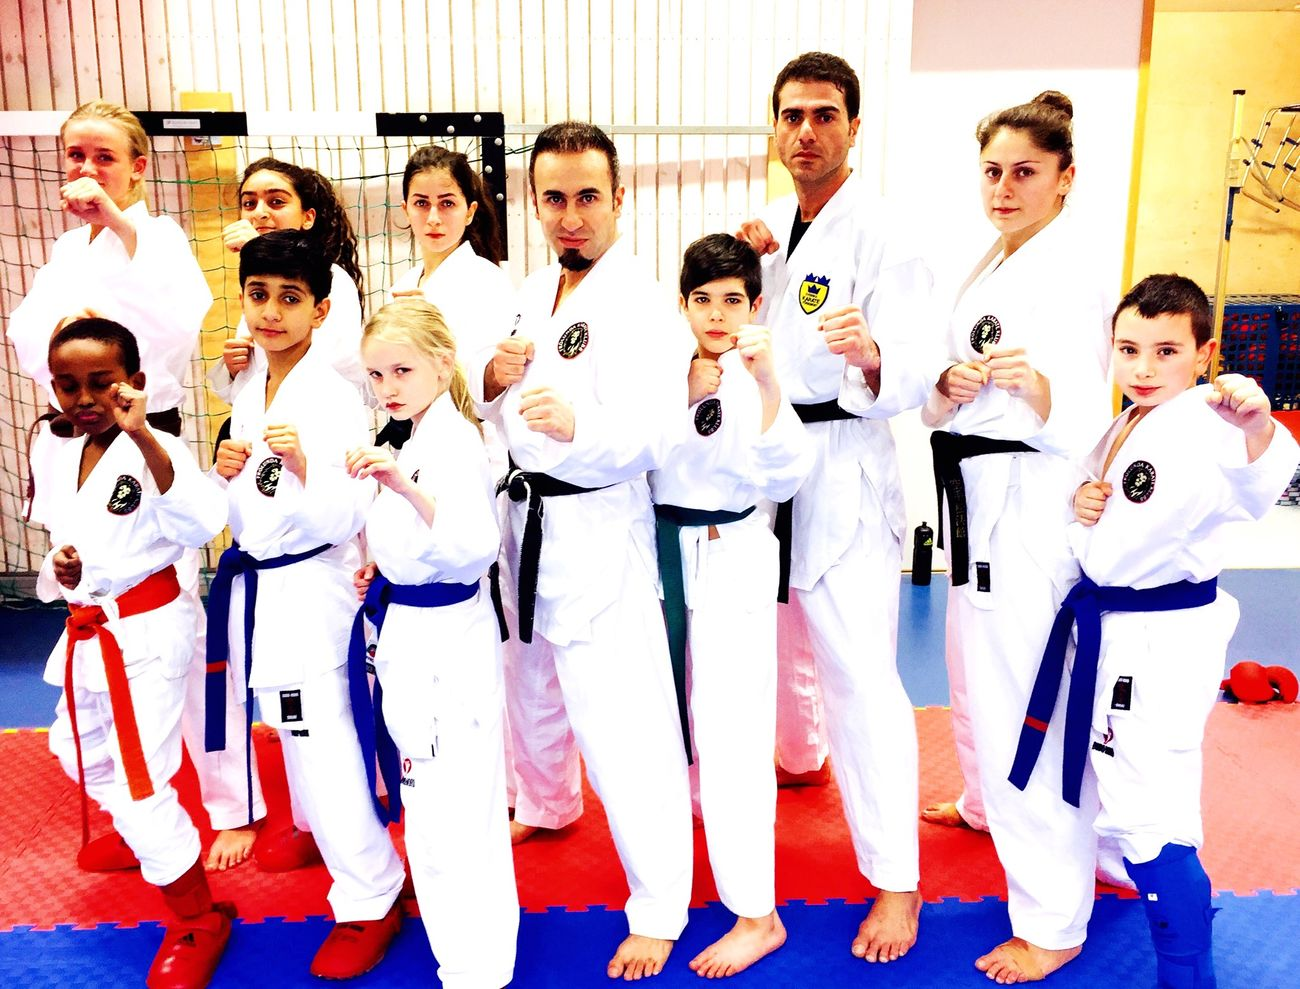 Karate Iran♥ Persian Persia Gothenburg Sweden Frölunda Karate Training People Martial Arts worldchampion Jasem Vishkaei